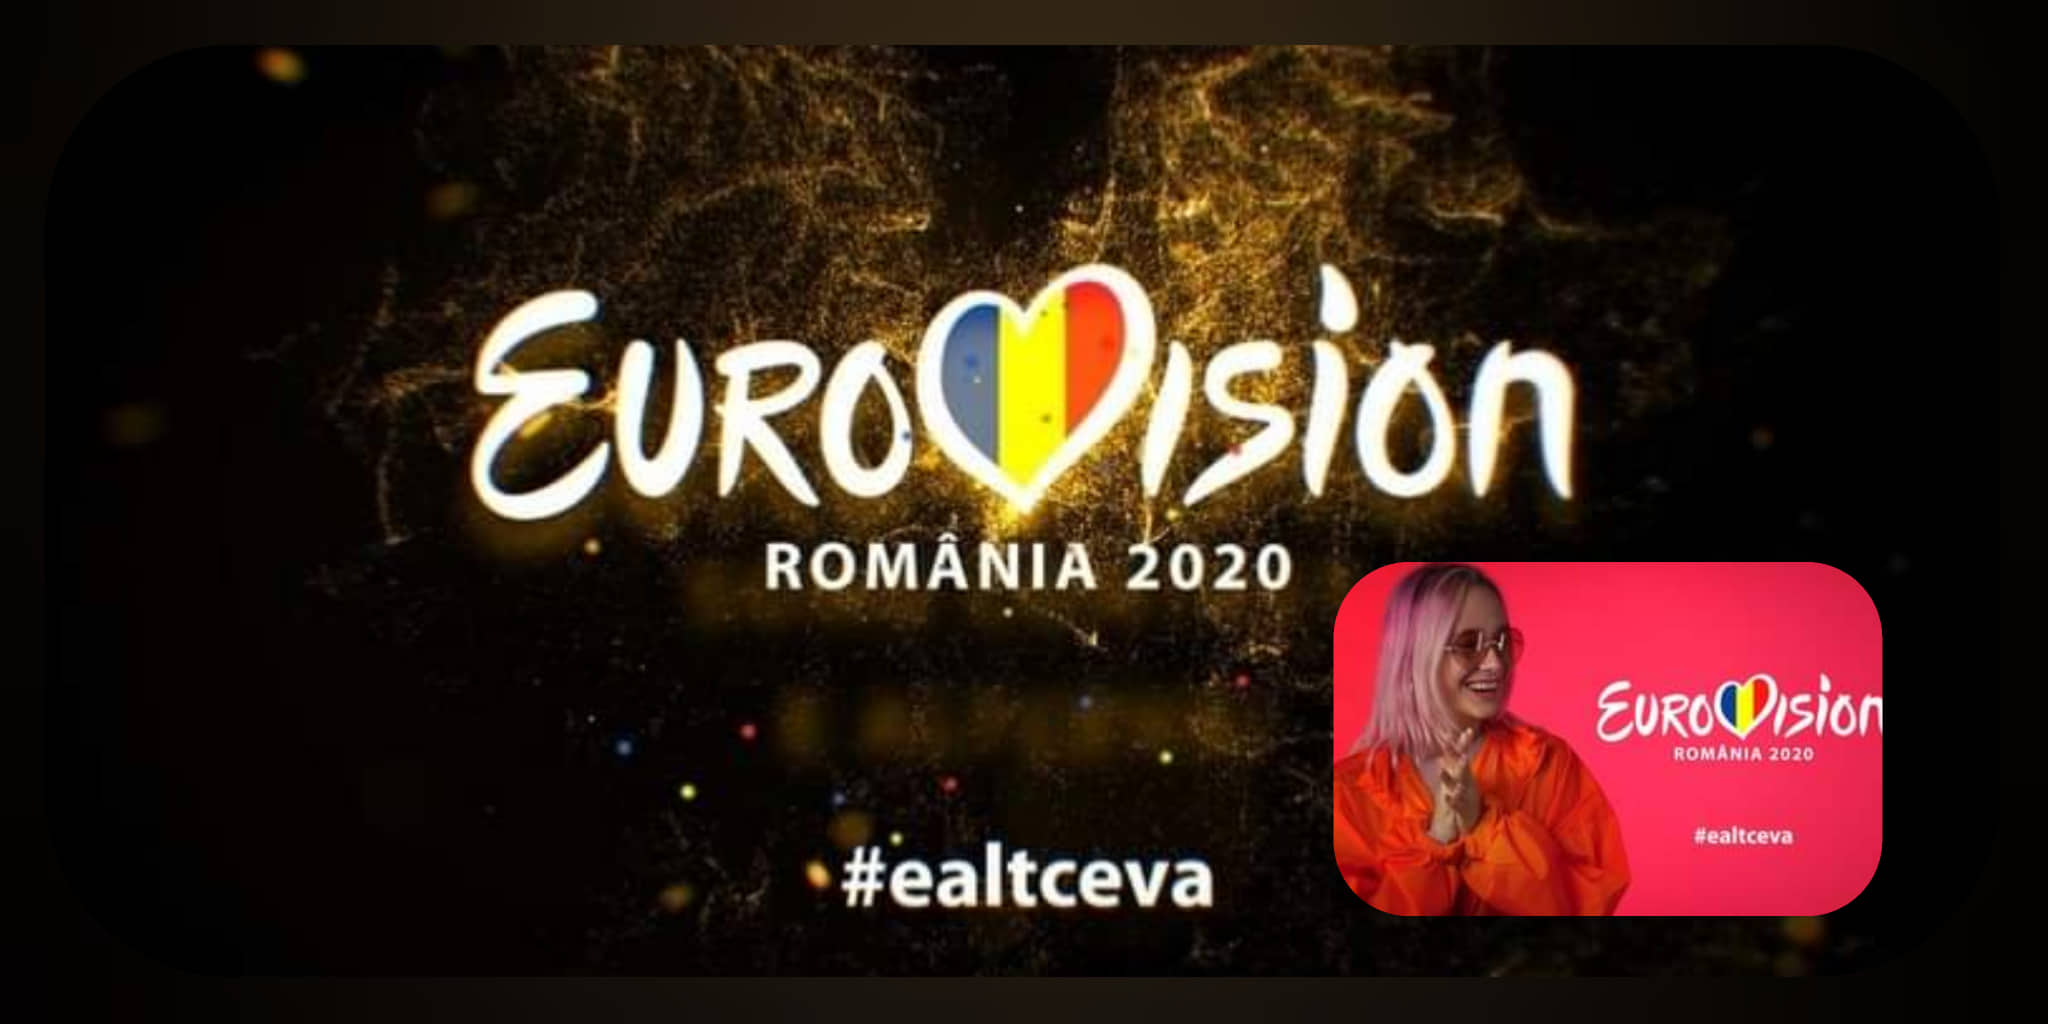 Romania: More light shed on the country's Eurovision 2020 national selection process